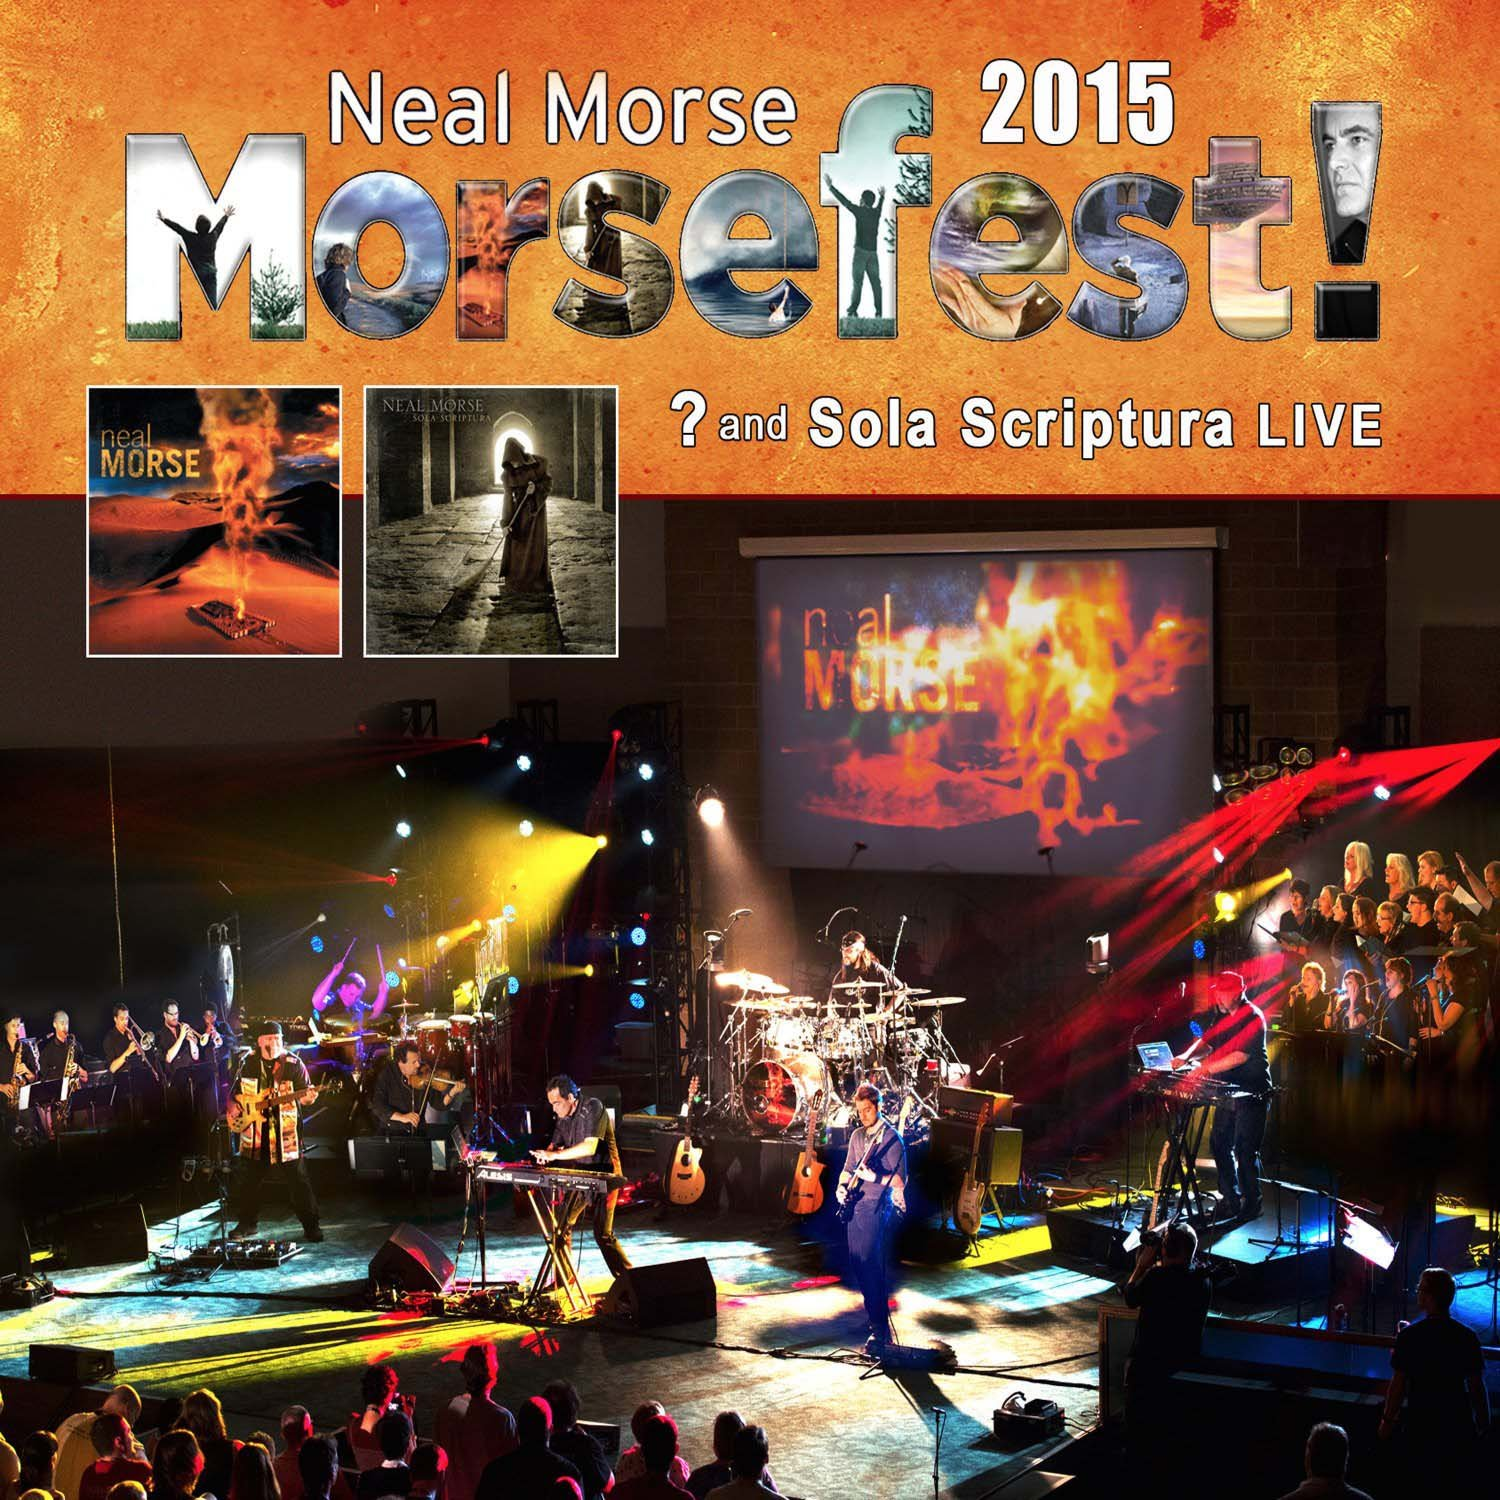 Blu-ray : Neal Morse - Morsefest 2015 Sola Scriptural And? Live (2 Disc)